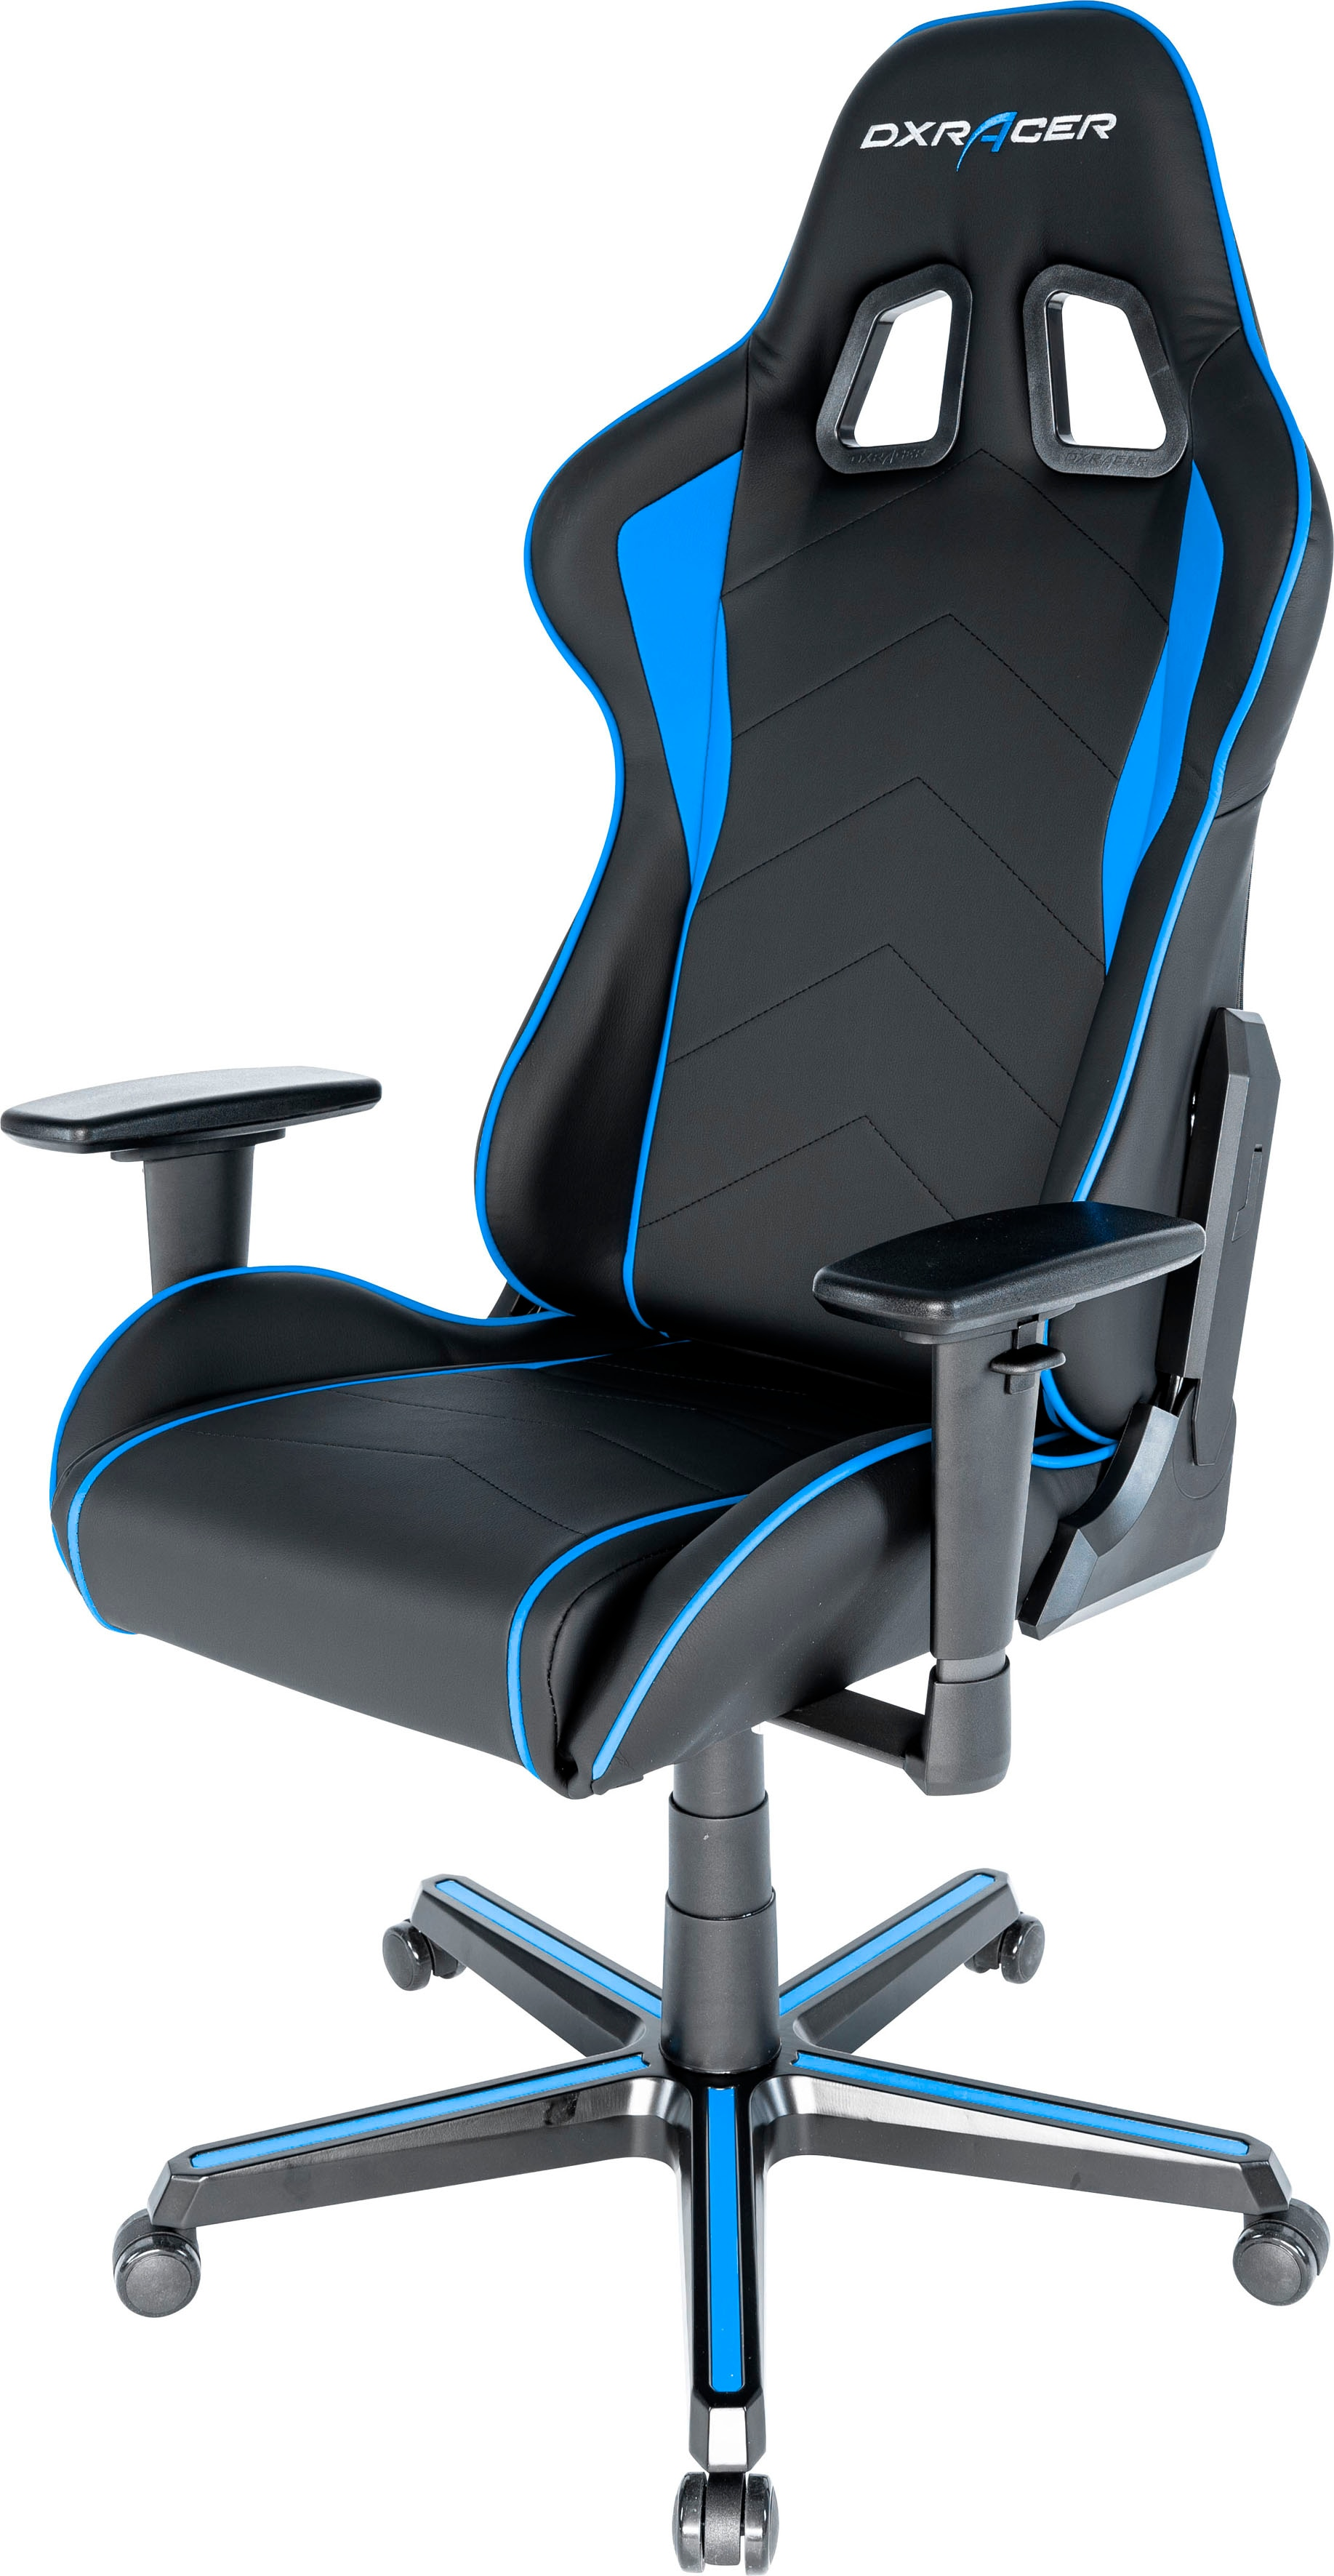 "DXRacer Gaming Chair ""DXRacer Gaming Stuhl OH/FH08 F-Serie"" Technik & Freizeit/Technik/Gaming-Shop/Gaming-Zubehör"